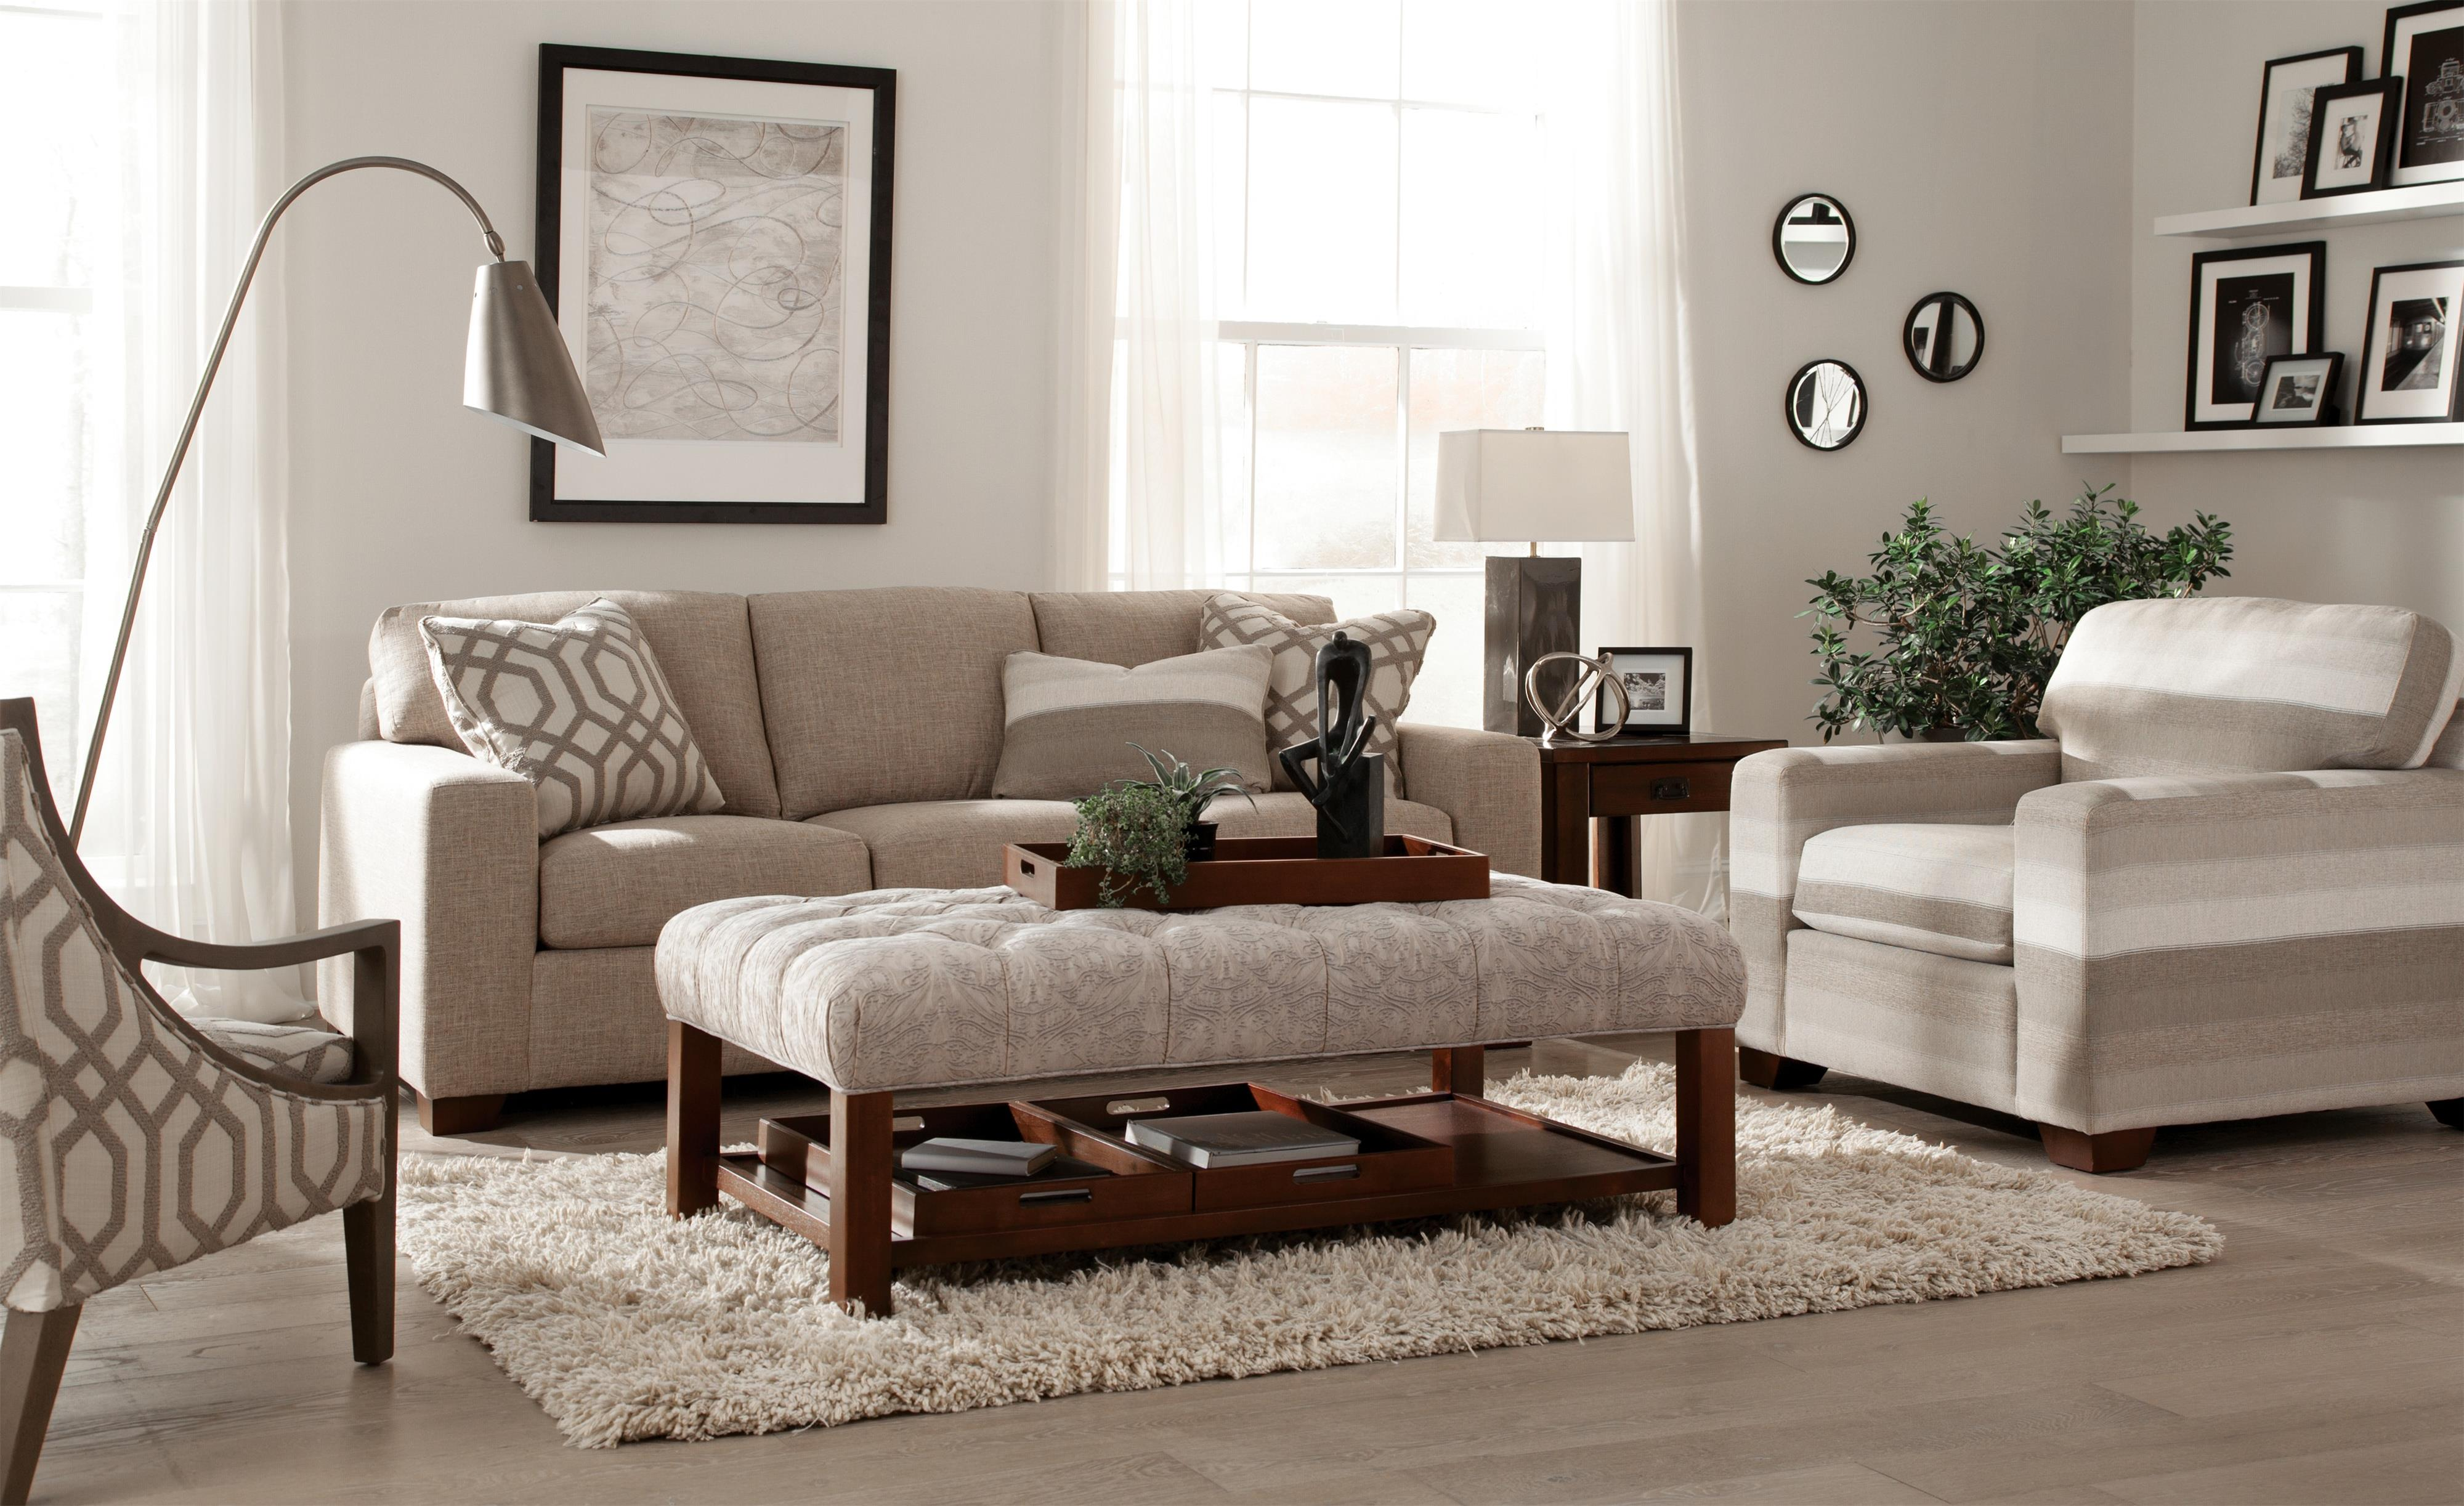 Hickorycraft 758700 Stationary Living Room Group - Item Number: 7587 Living Room Group 1